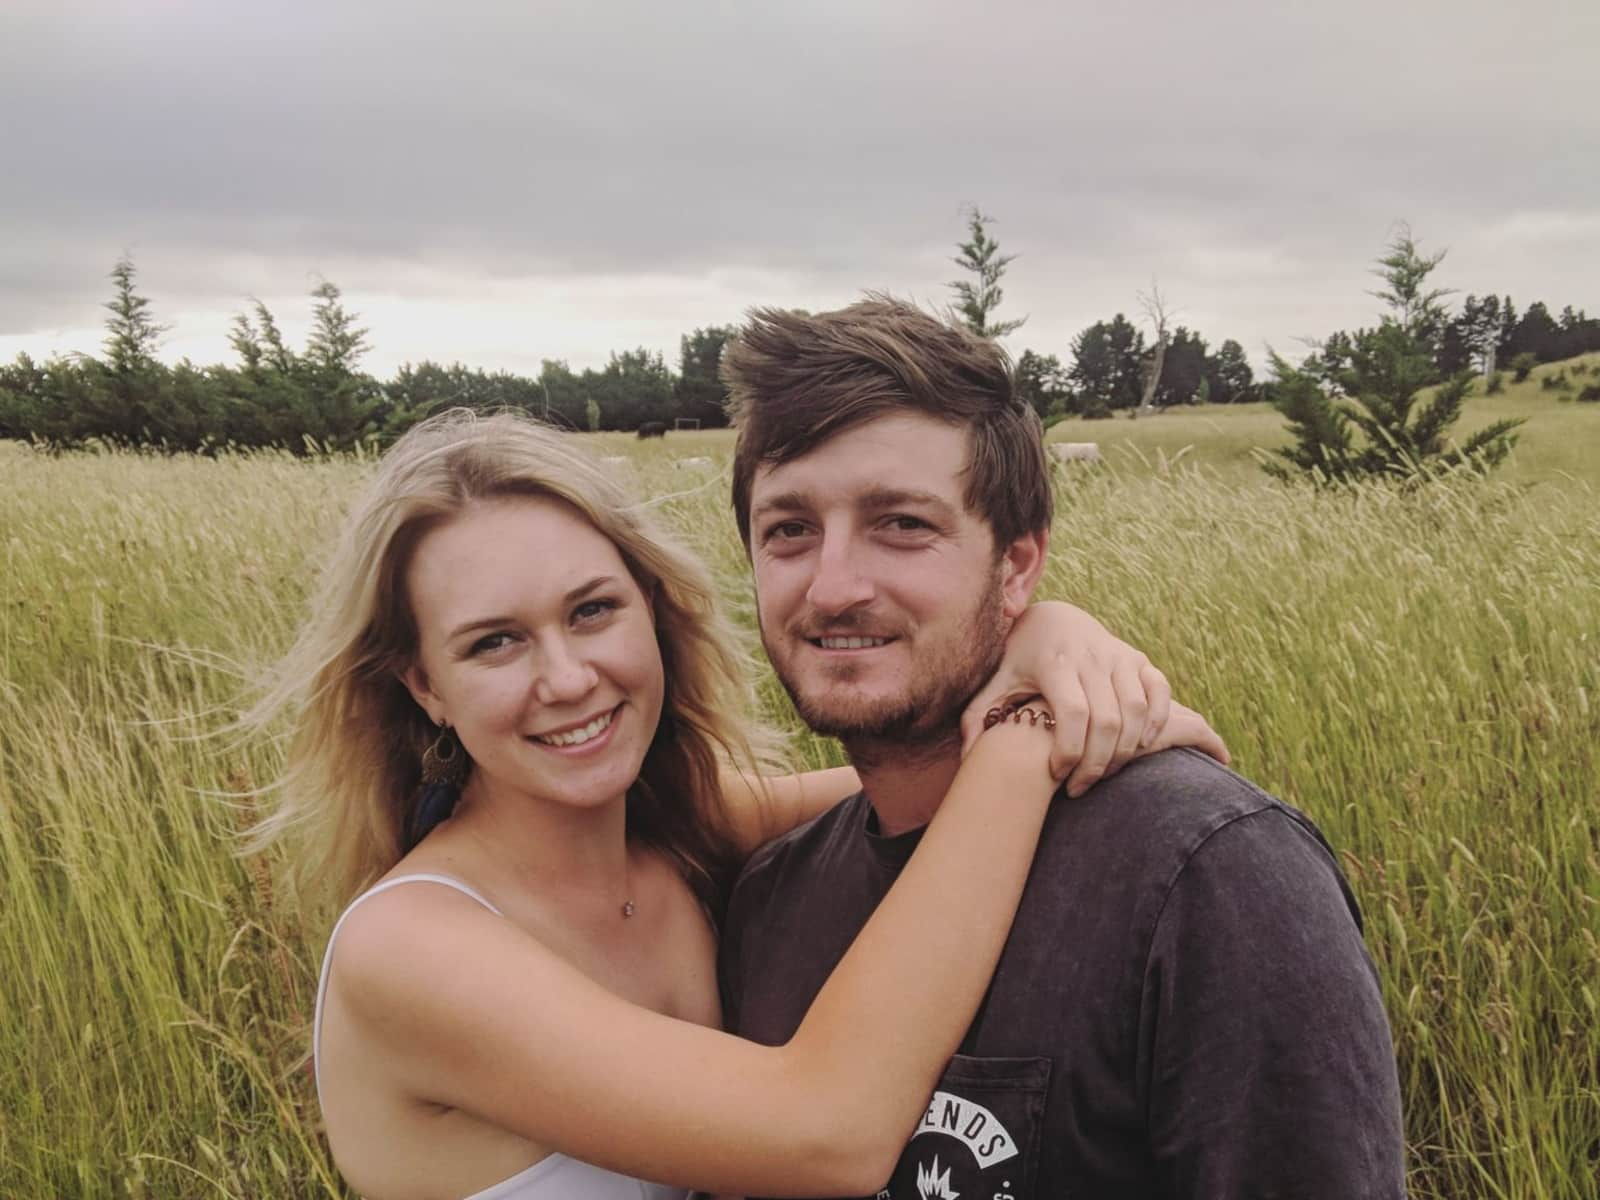 Morgan & Adrian from Armidale, New South Wales, Australia